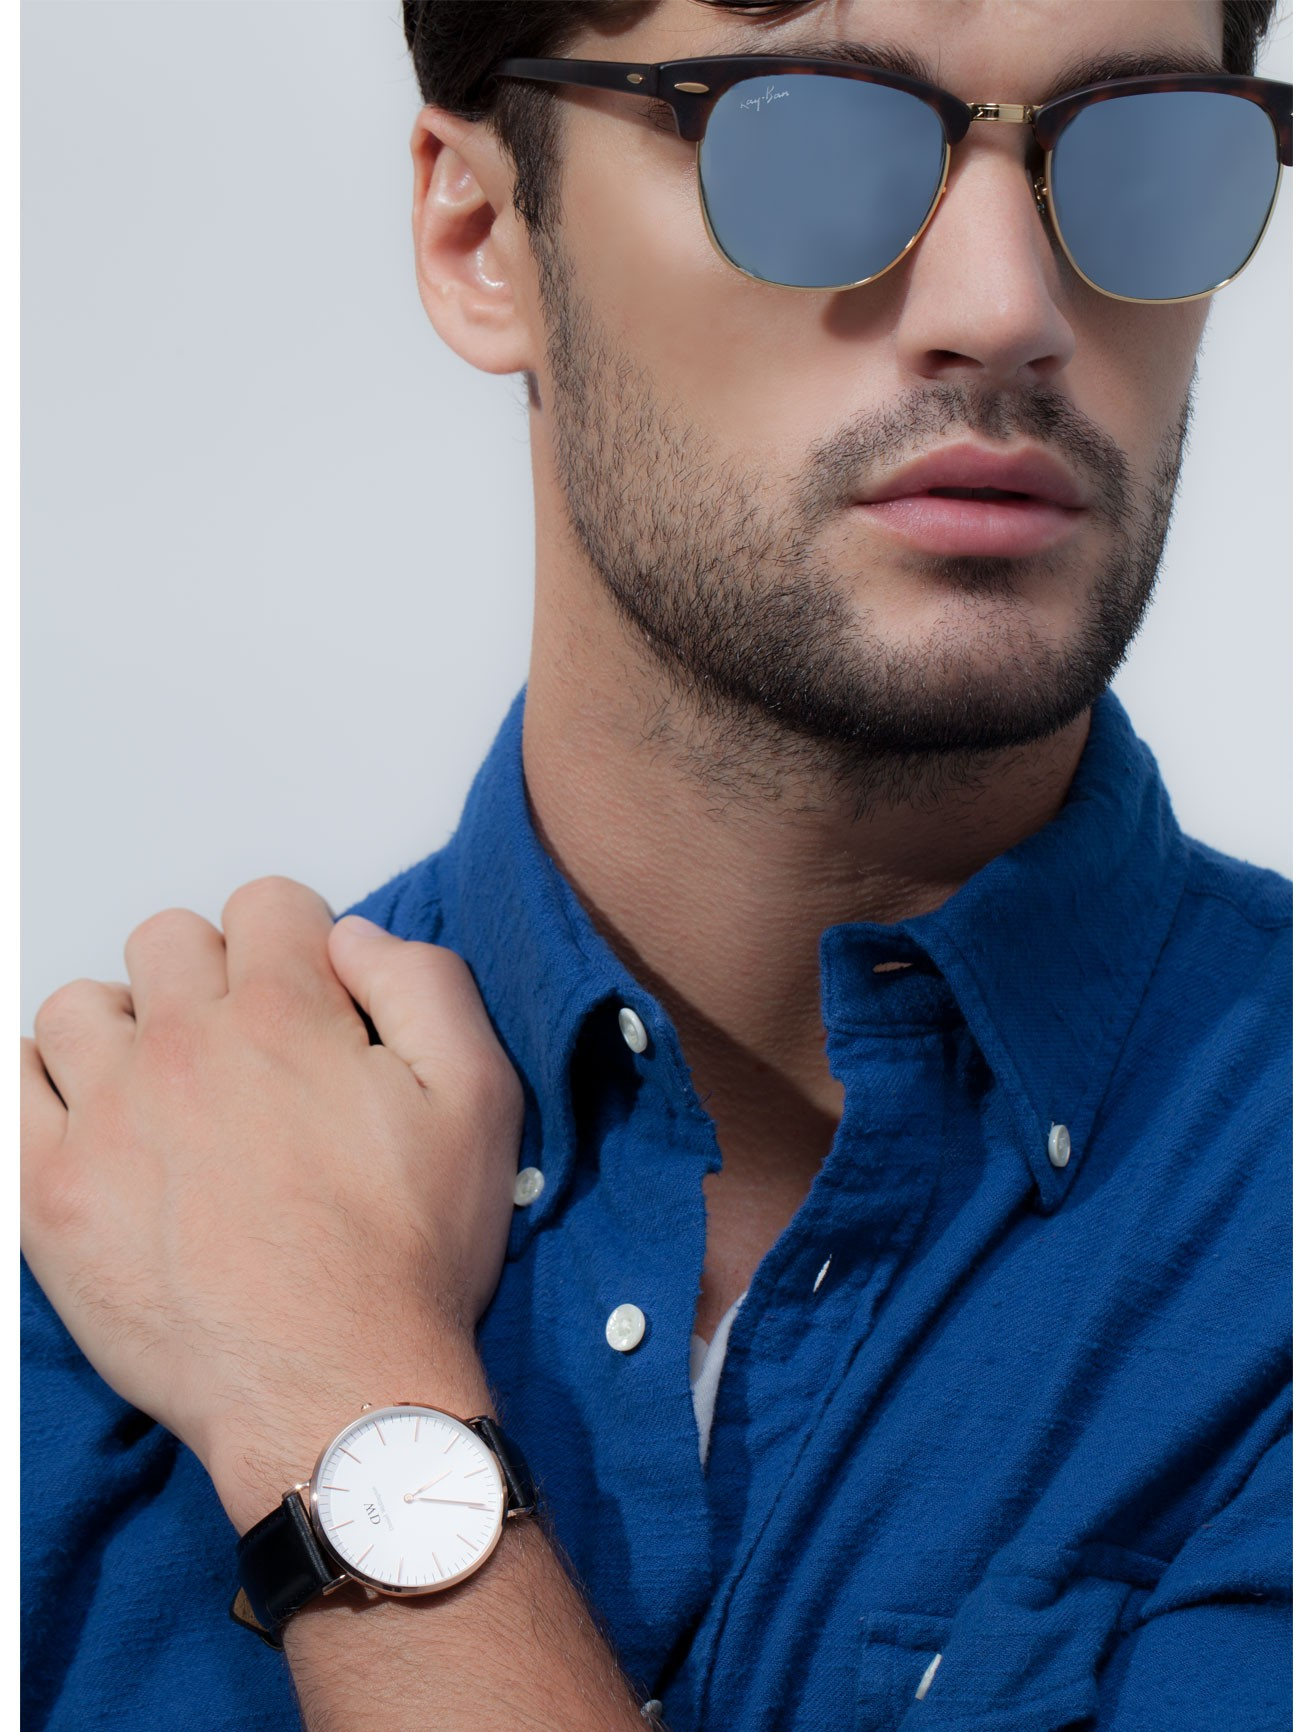 Ray Ban Clubmaster For Men Heritage Malta